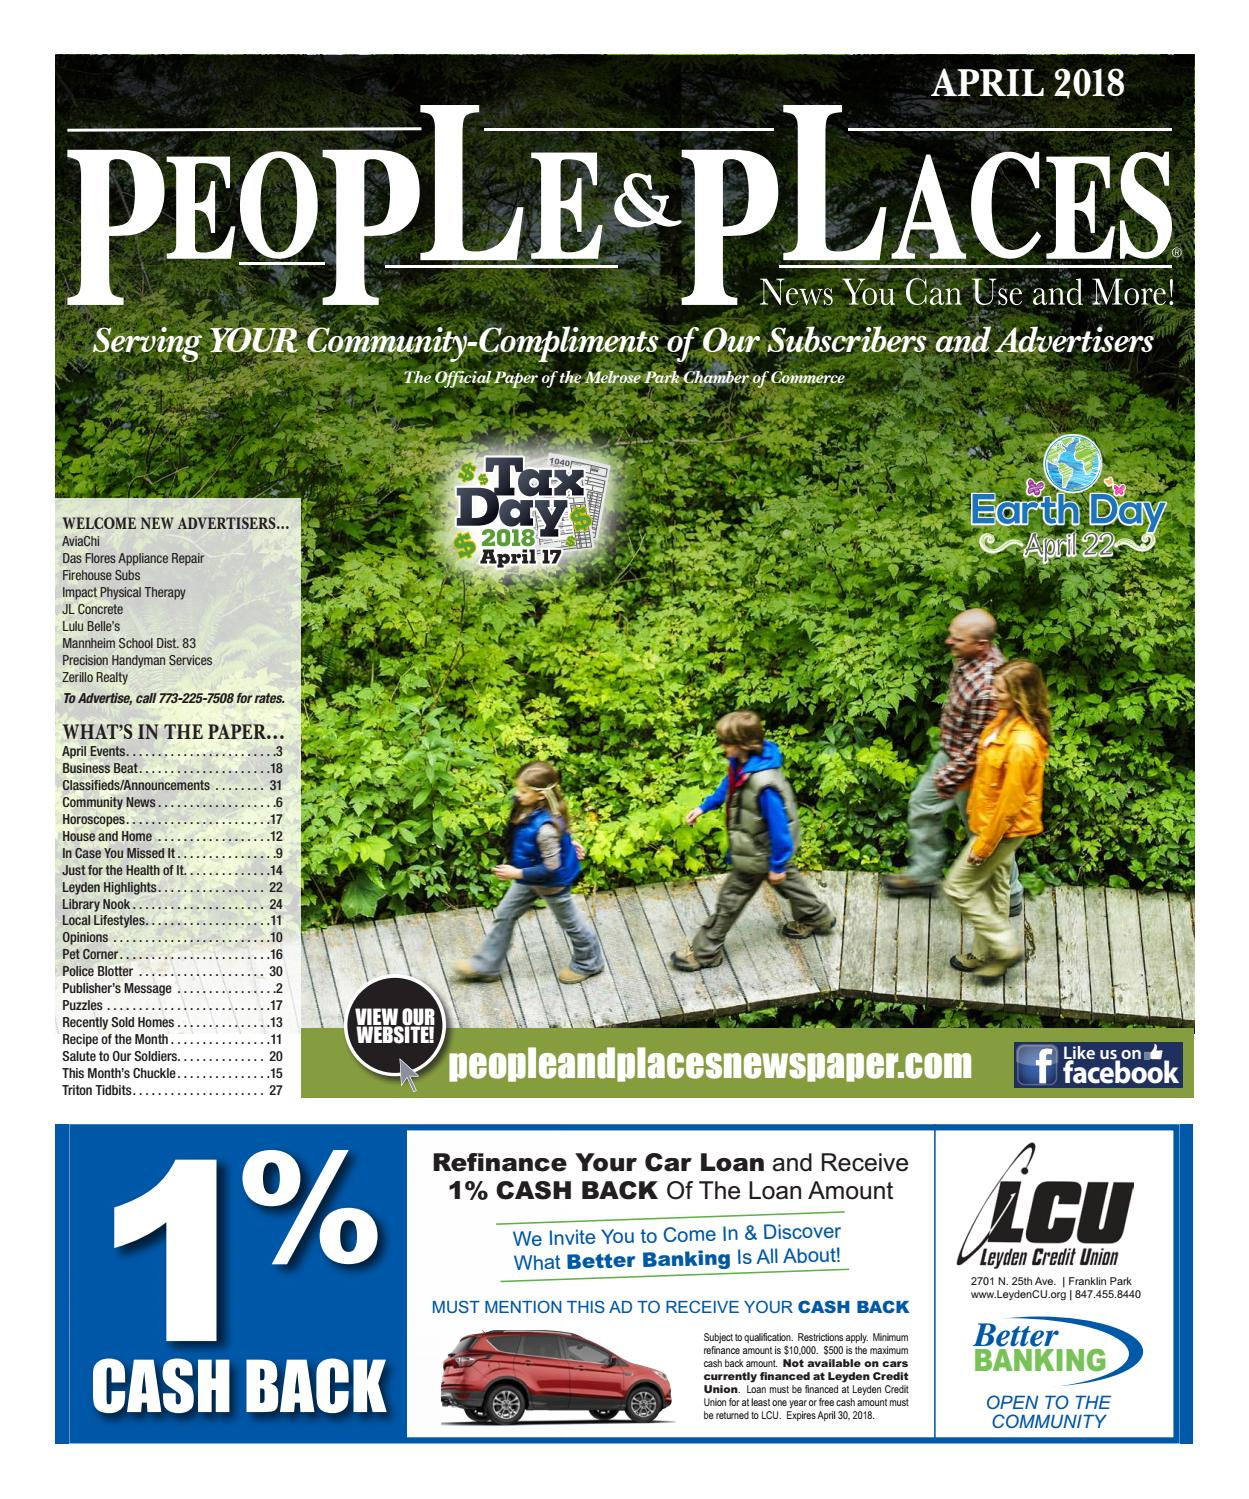 April 2018 People & Places Newspaper by Jennifer Creative - issuu